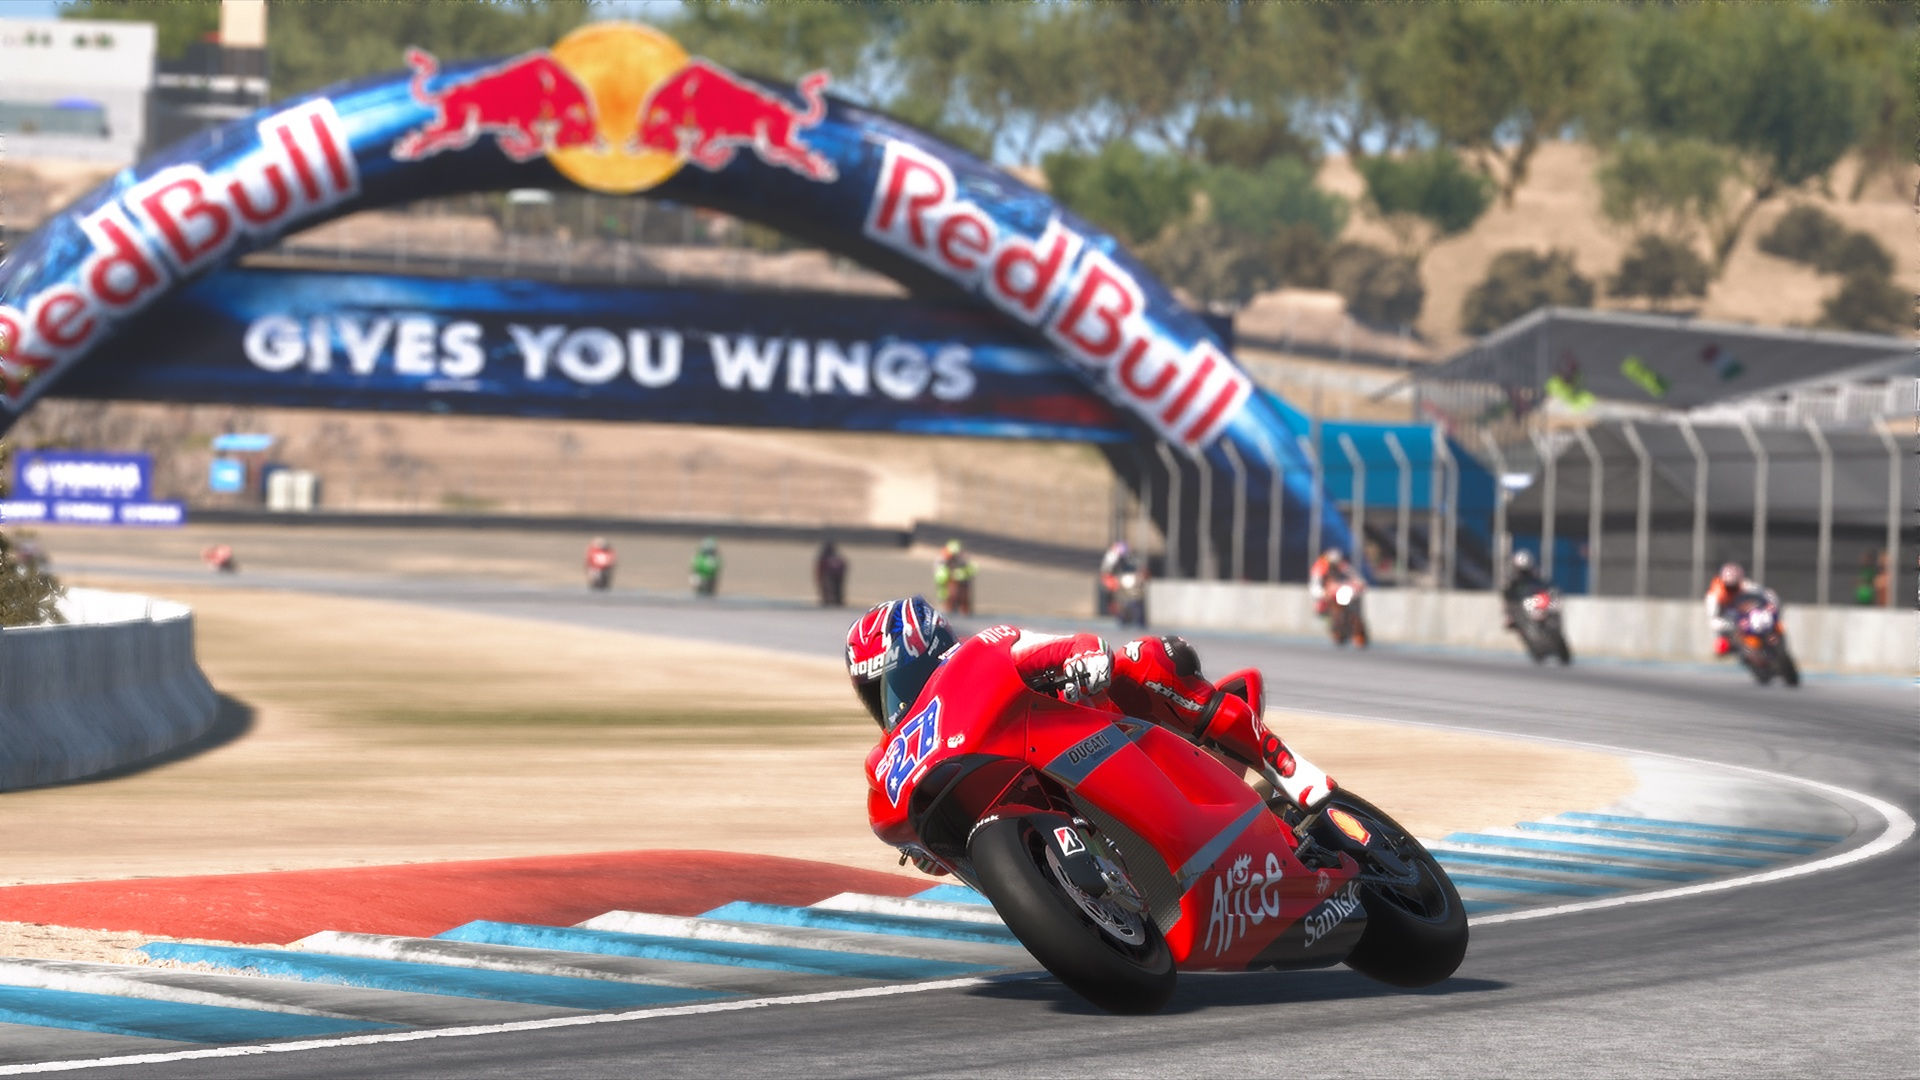 Automobile, Dorna Sports, Driving, Milestone S.r.l., Moto2, Moto3, MotoGP, MotoGP 19, MotoGP 19 Review, Motorcycle Racing, Nintendo Switch Review, Racing, Rating 8/10, Red Bull MotoGP, simulation, Sports, Switch Review